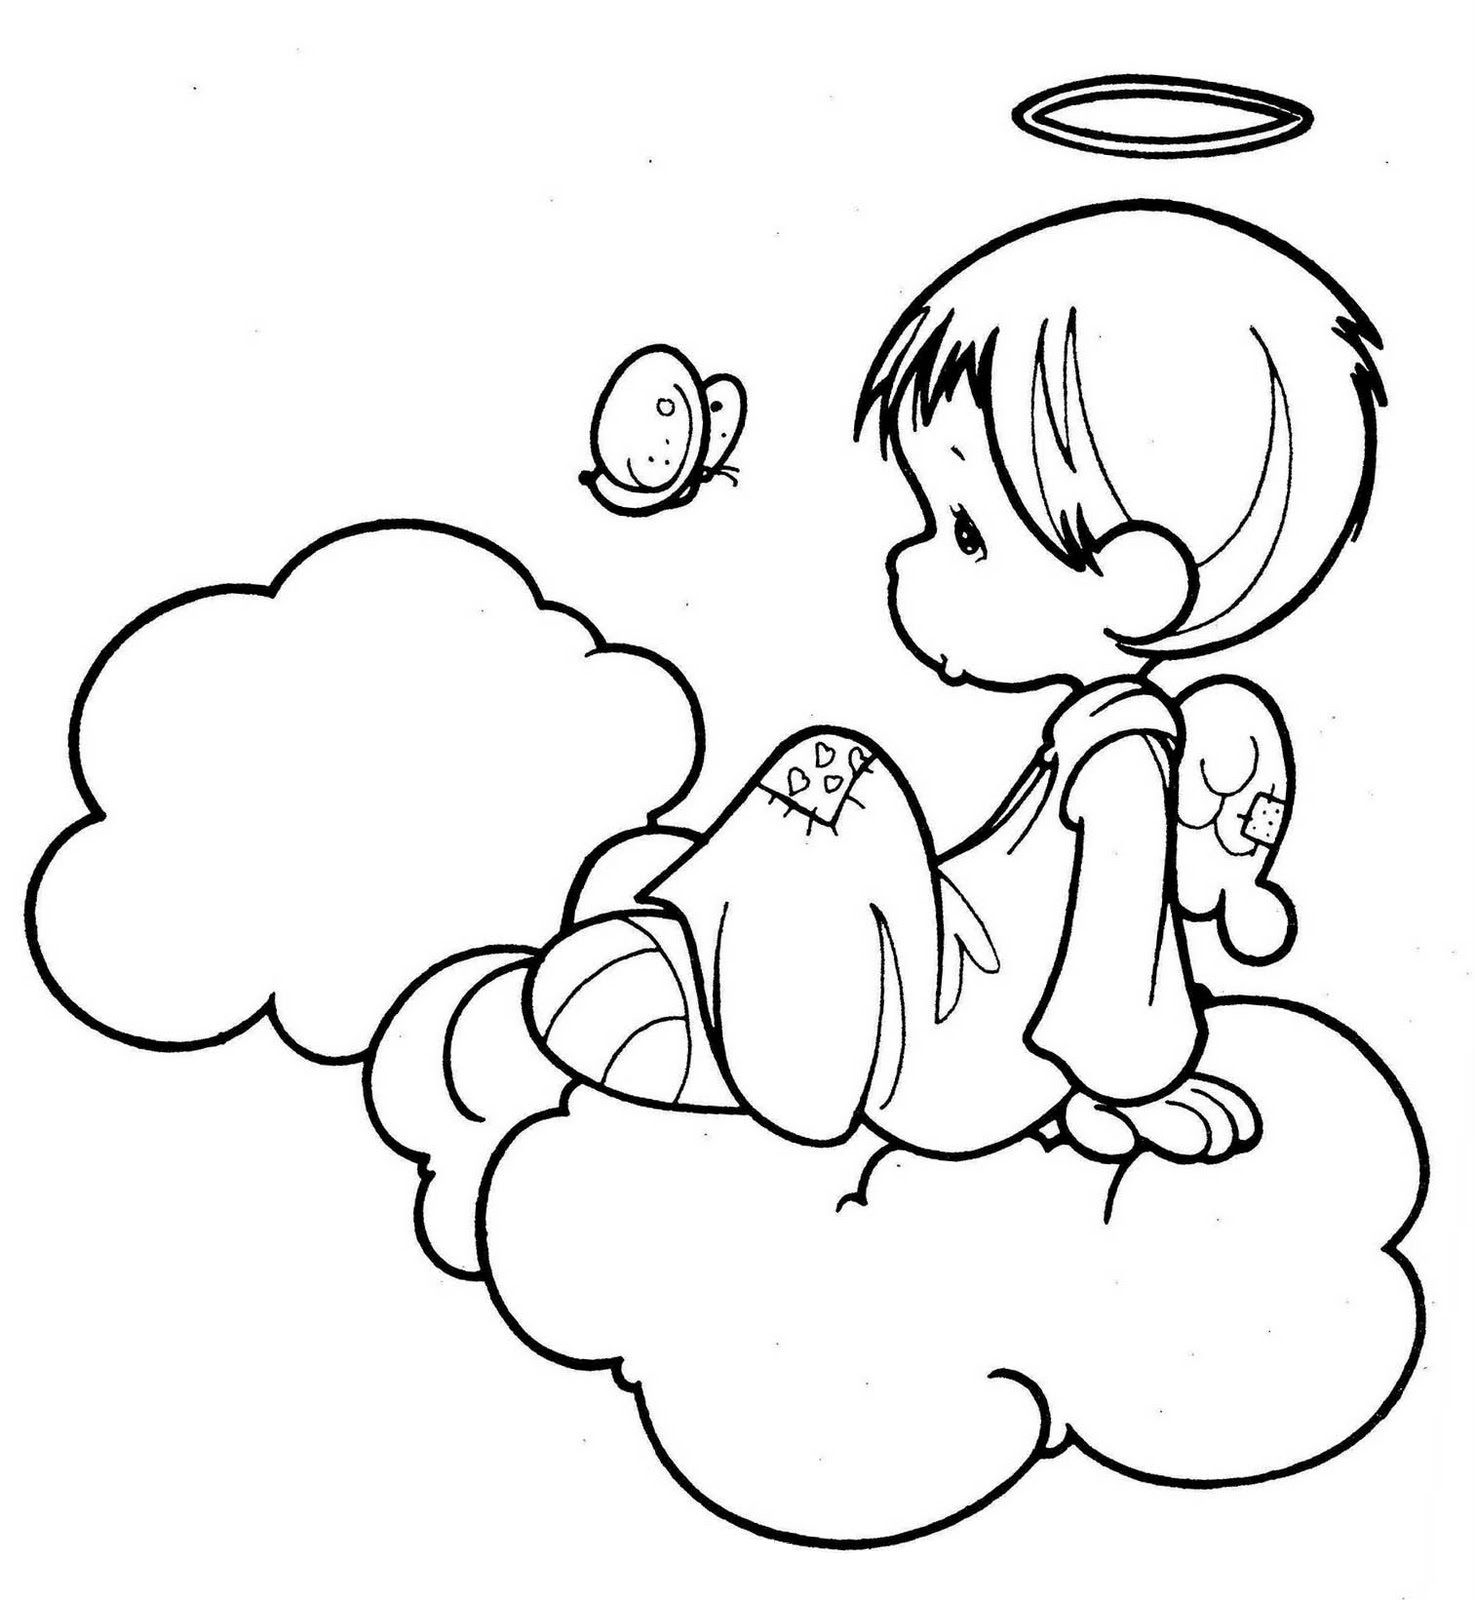 Angel Printable Coloring Pages | Printable Coloring Pages: Angel Coloring  Pages